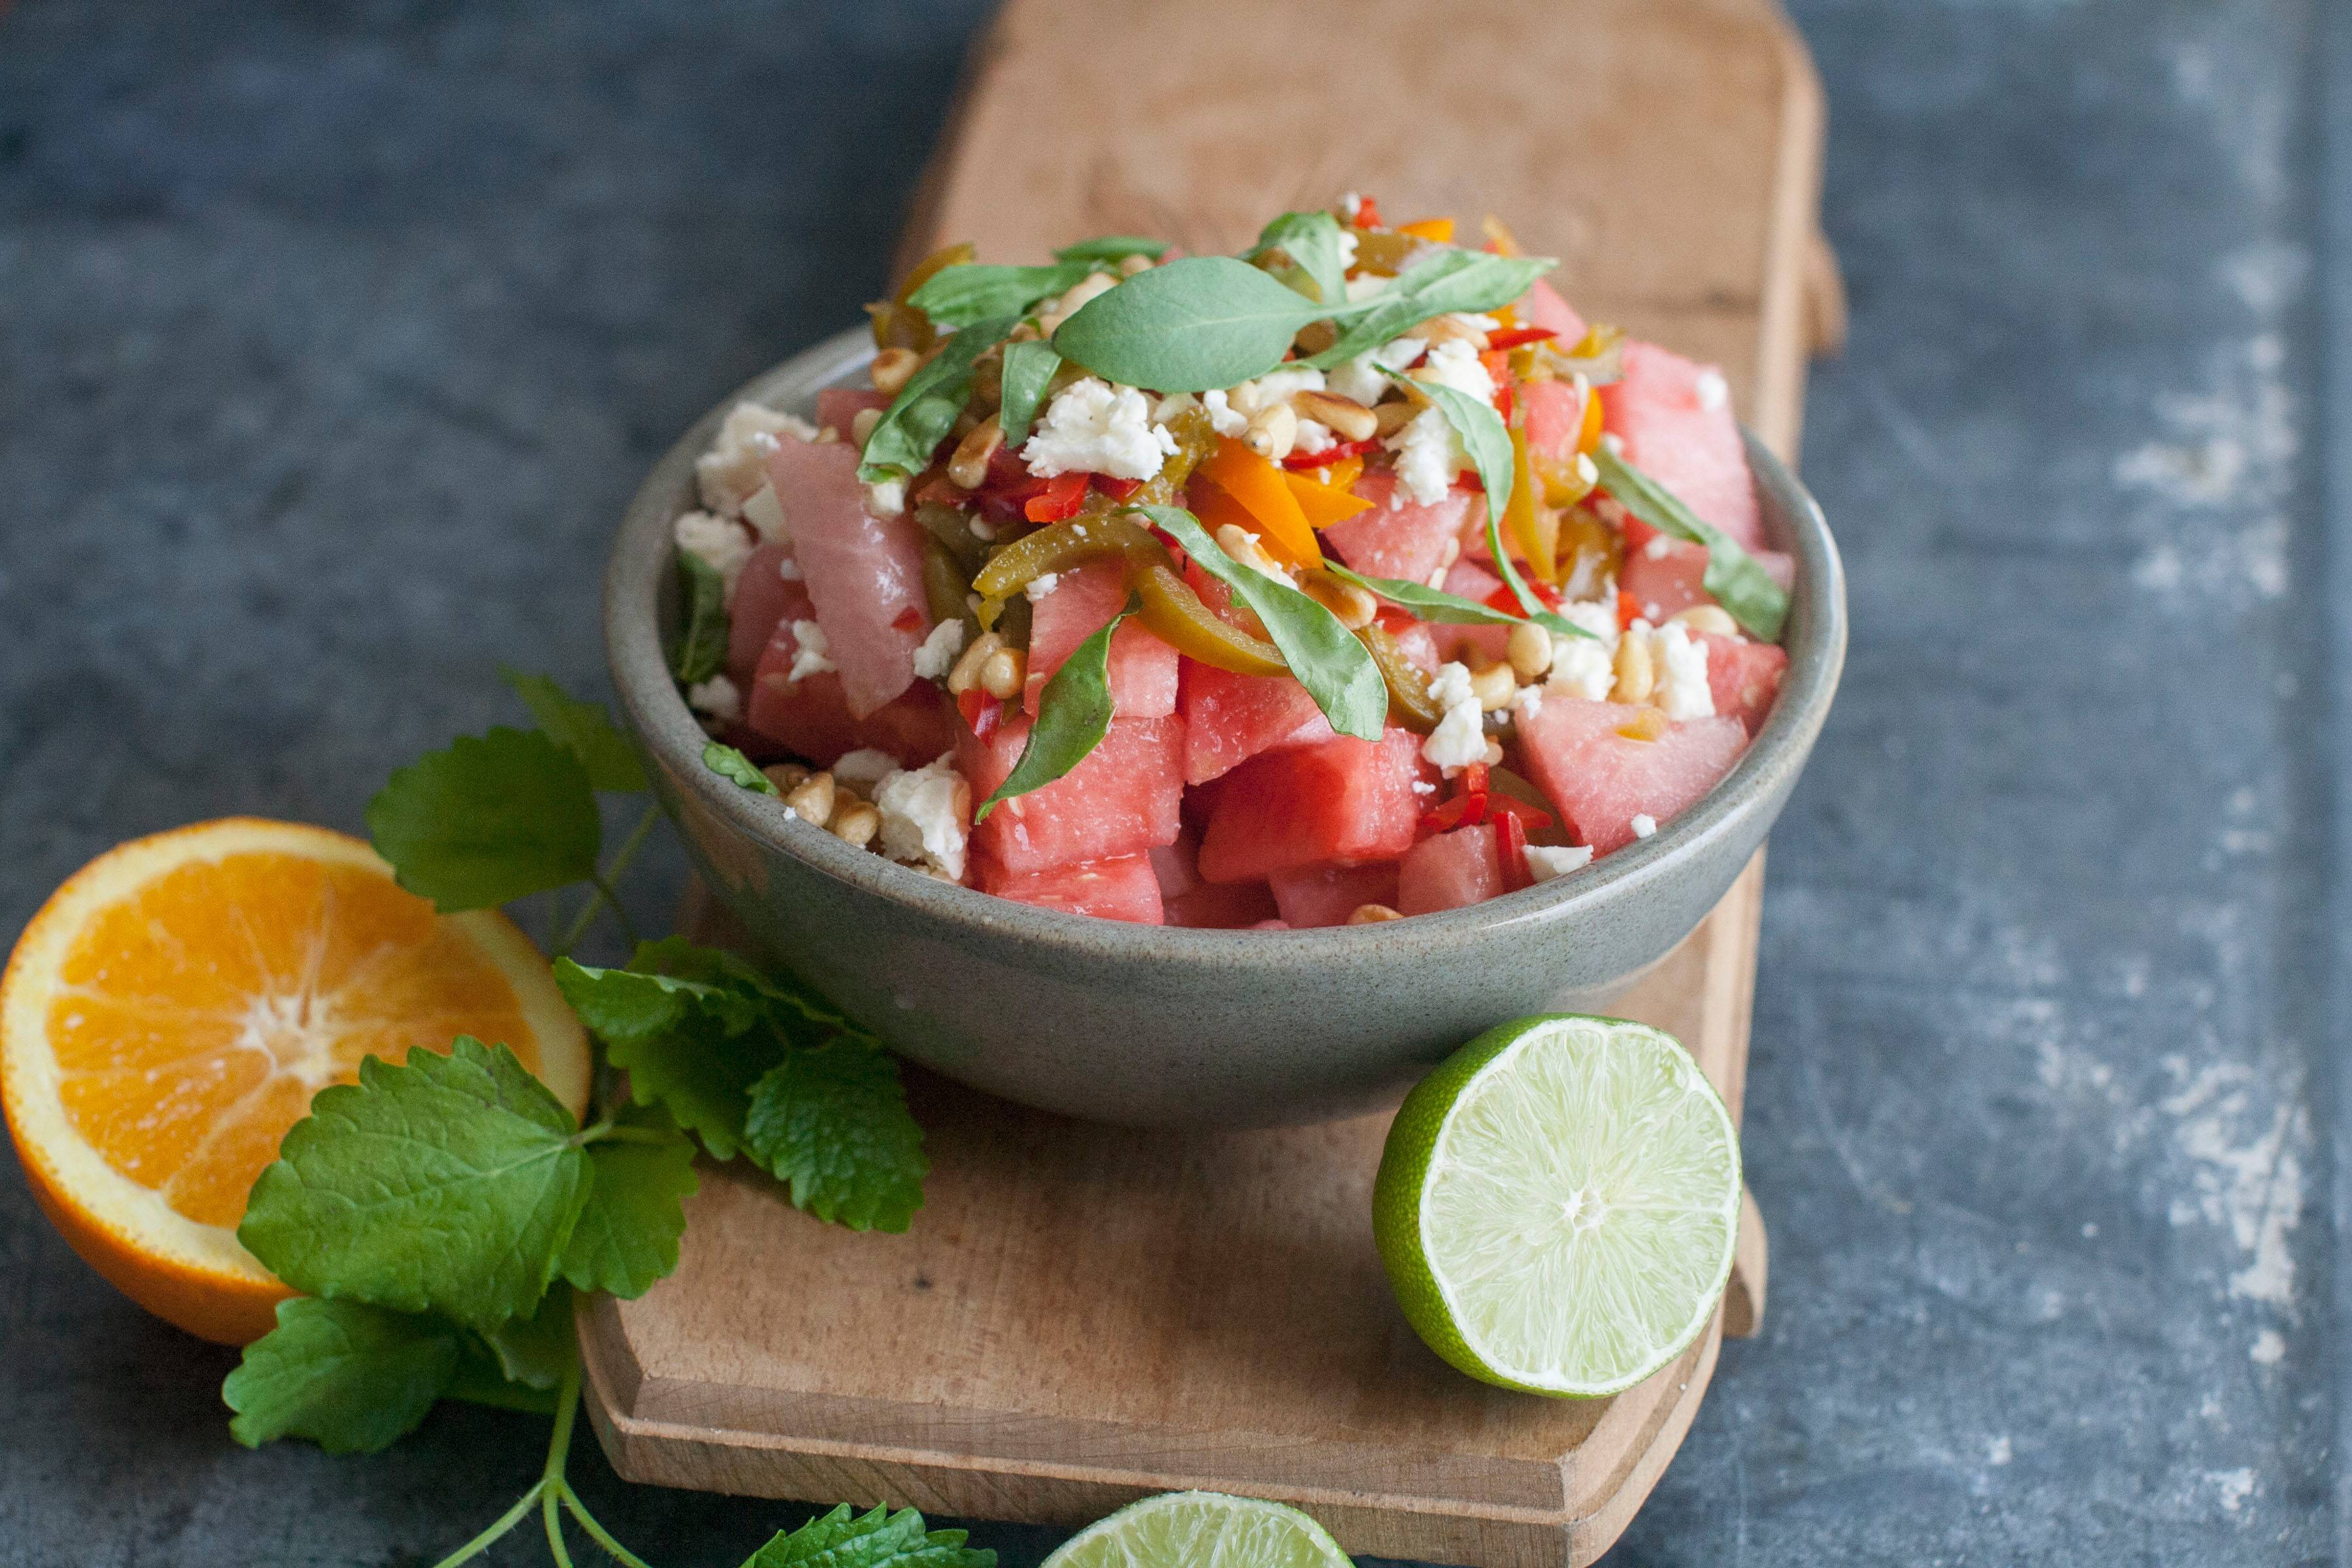 Associated PressWatermelon can handle a bit of spicy and partners well with feta and basil for a refreshing salad.